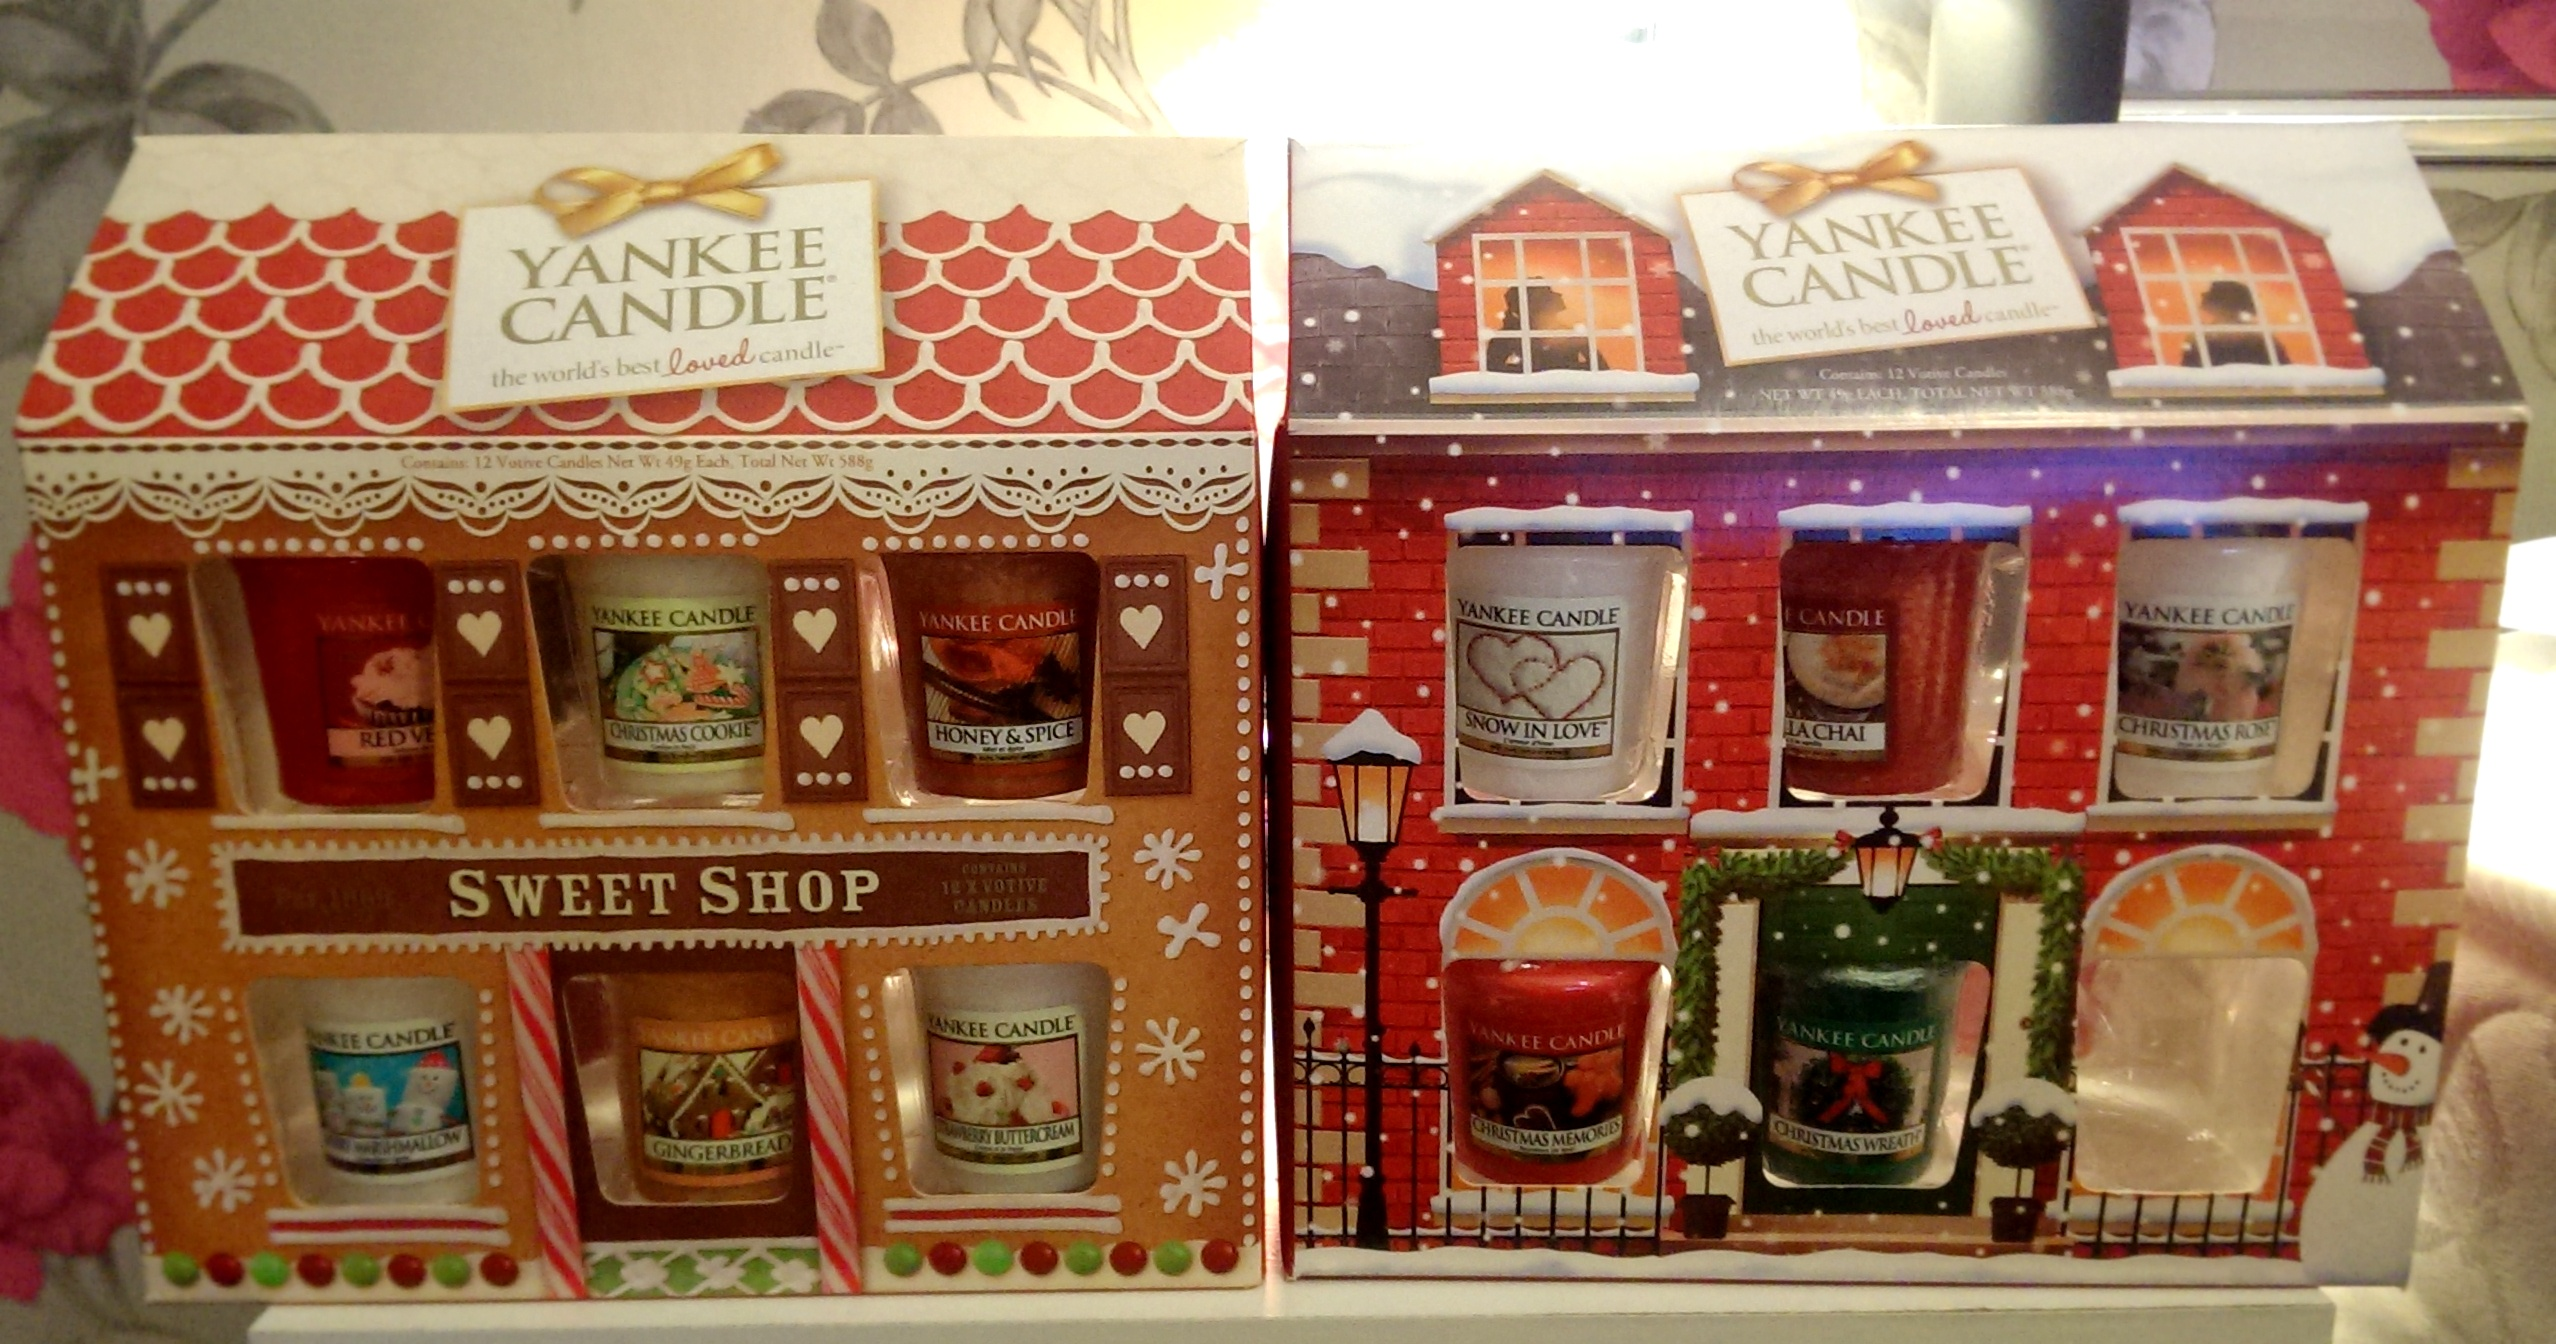 imag1135 i got these yankee candle gift sets for christmas